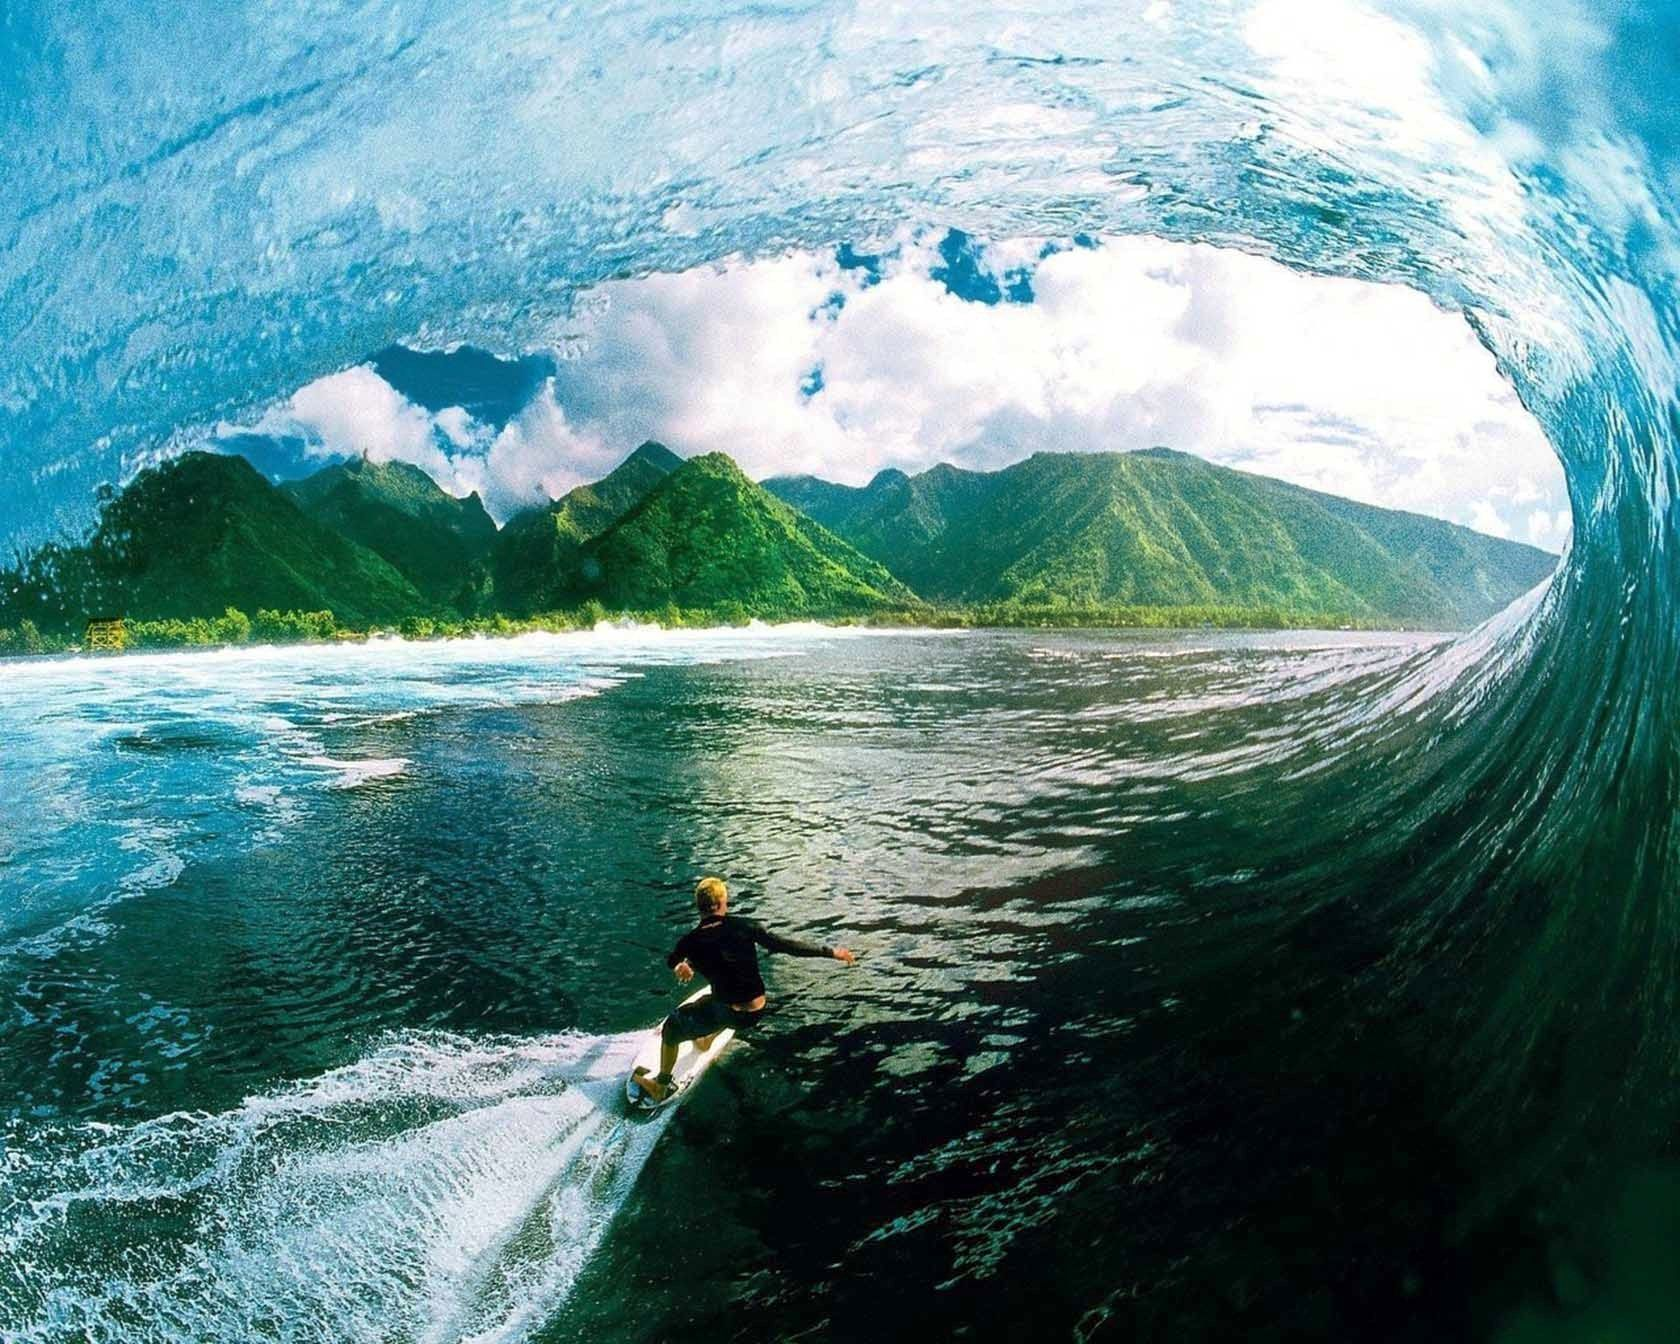 pictures surf hd - Pesquisa do Google   GOOD JOB   Pinterest ... 40cf0b34fb